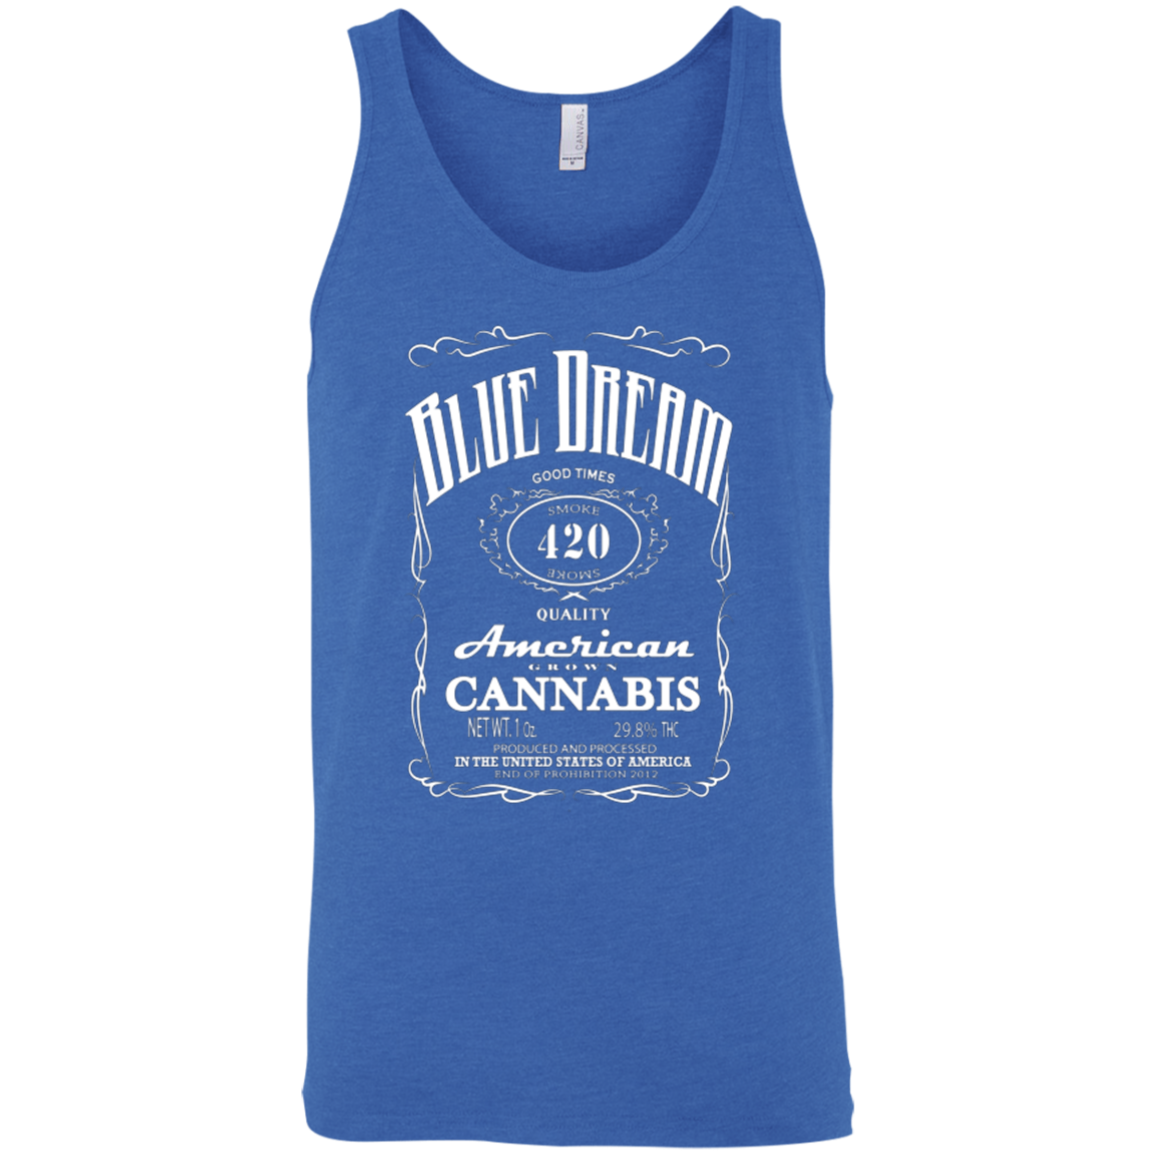 BLUE DREAM - Unisex Tank - Herban Apparel